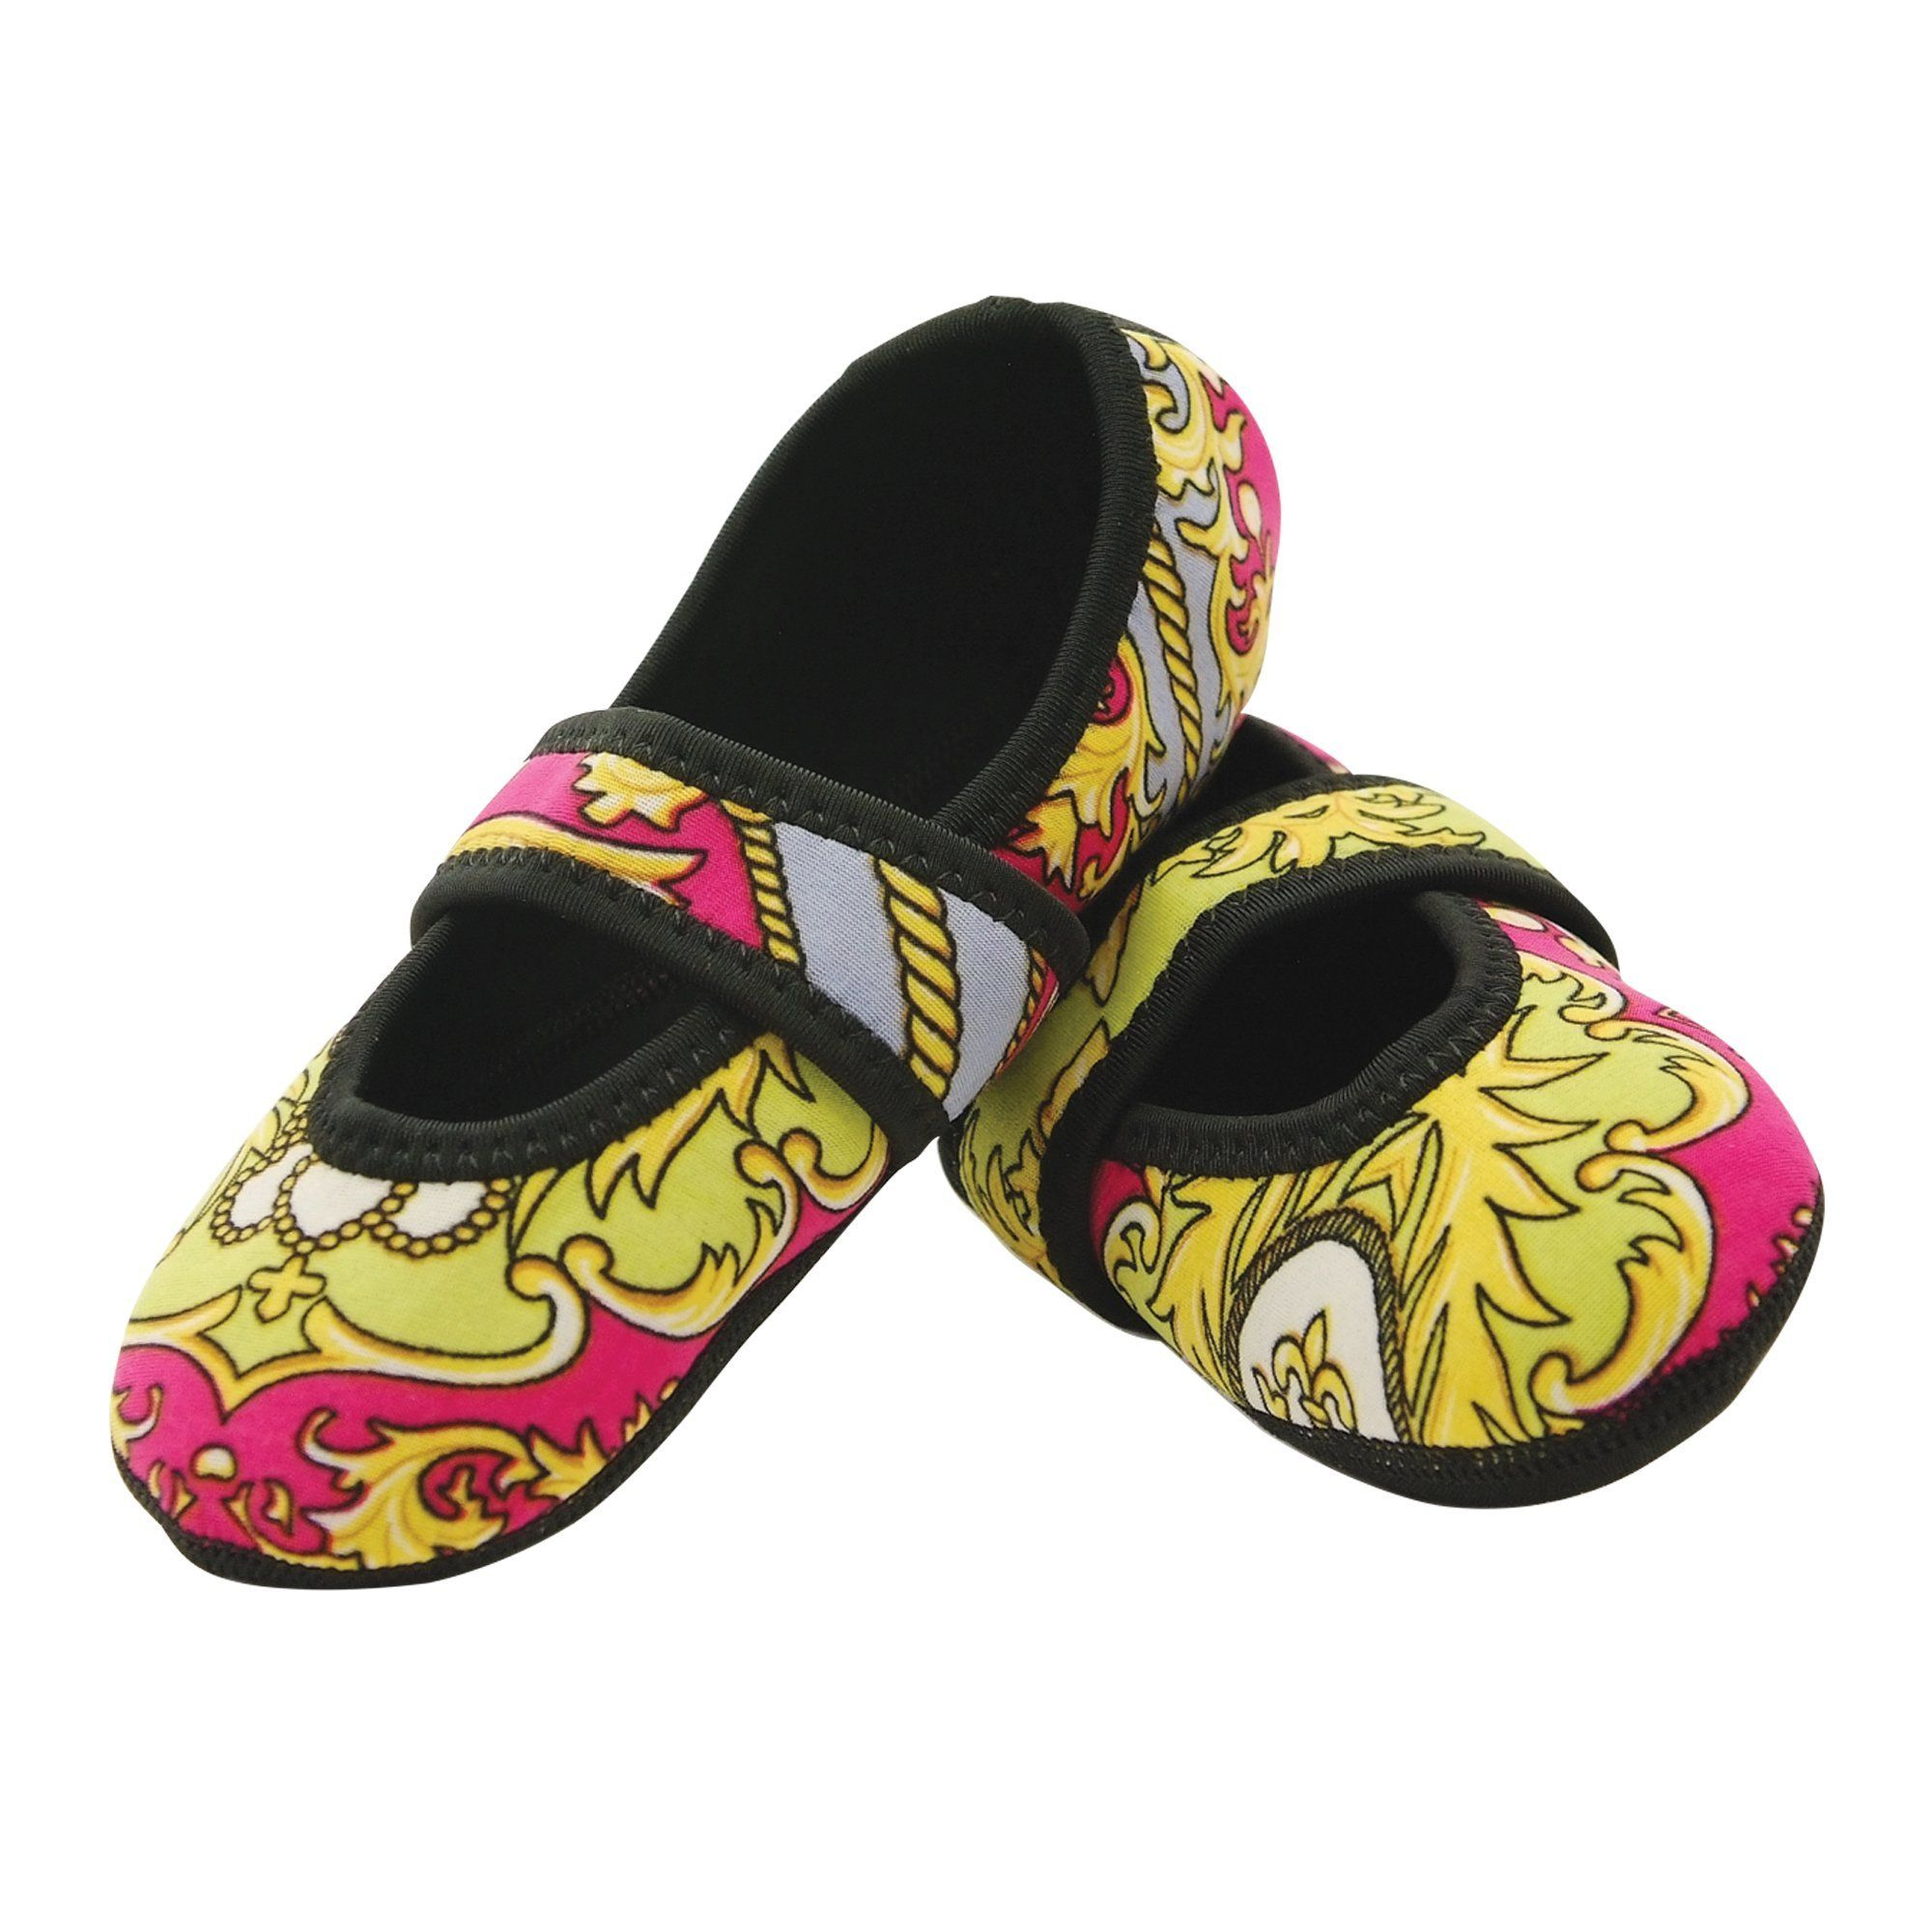 Nufoot Pink Baroque Betsy Lou Medium Slippers